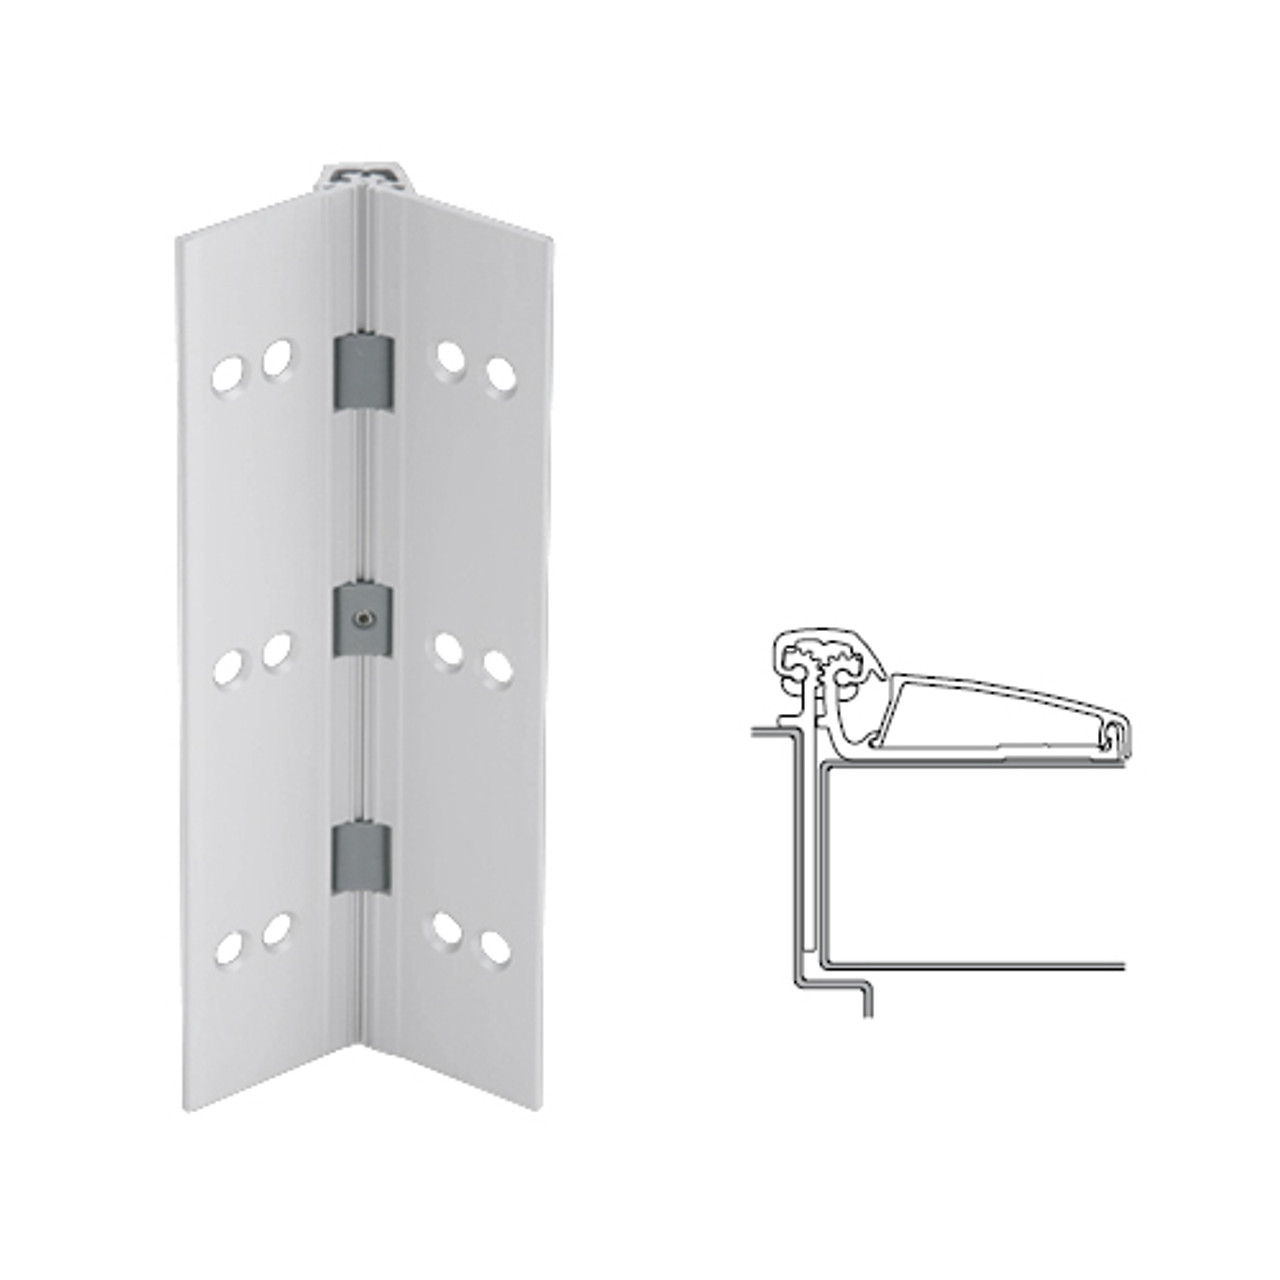 046XY-US28-83-SECHM IVES Adjustable Half Surface Continuous Geared Hinges with Security Screws - Hex Pin Drive in Satin Aluminum